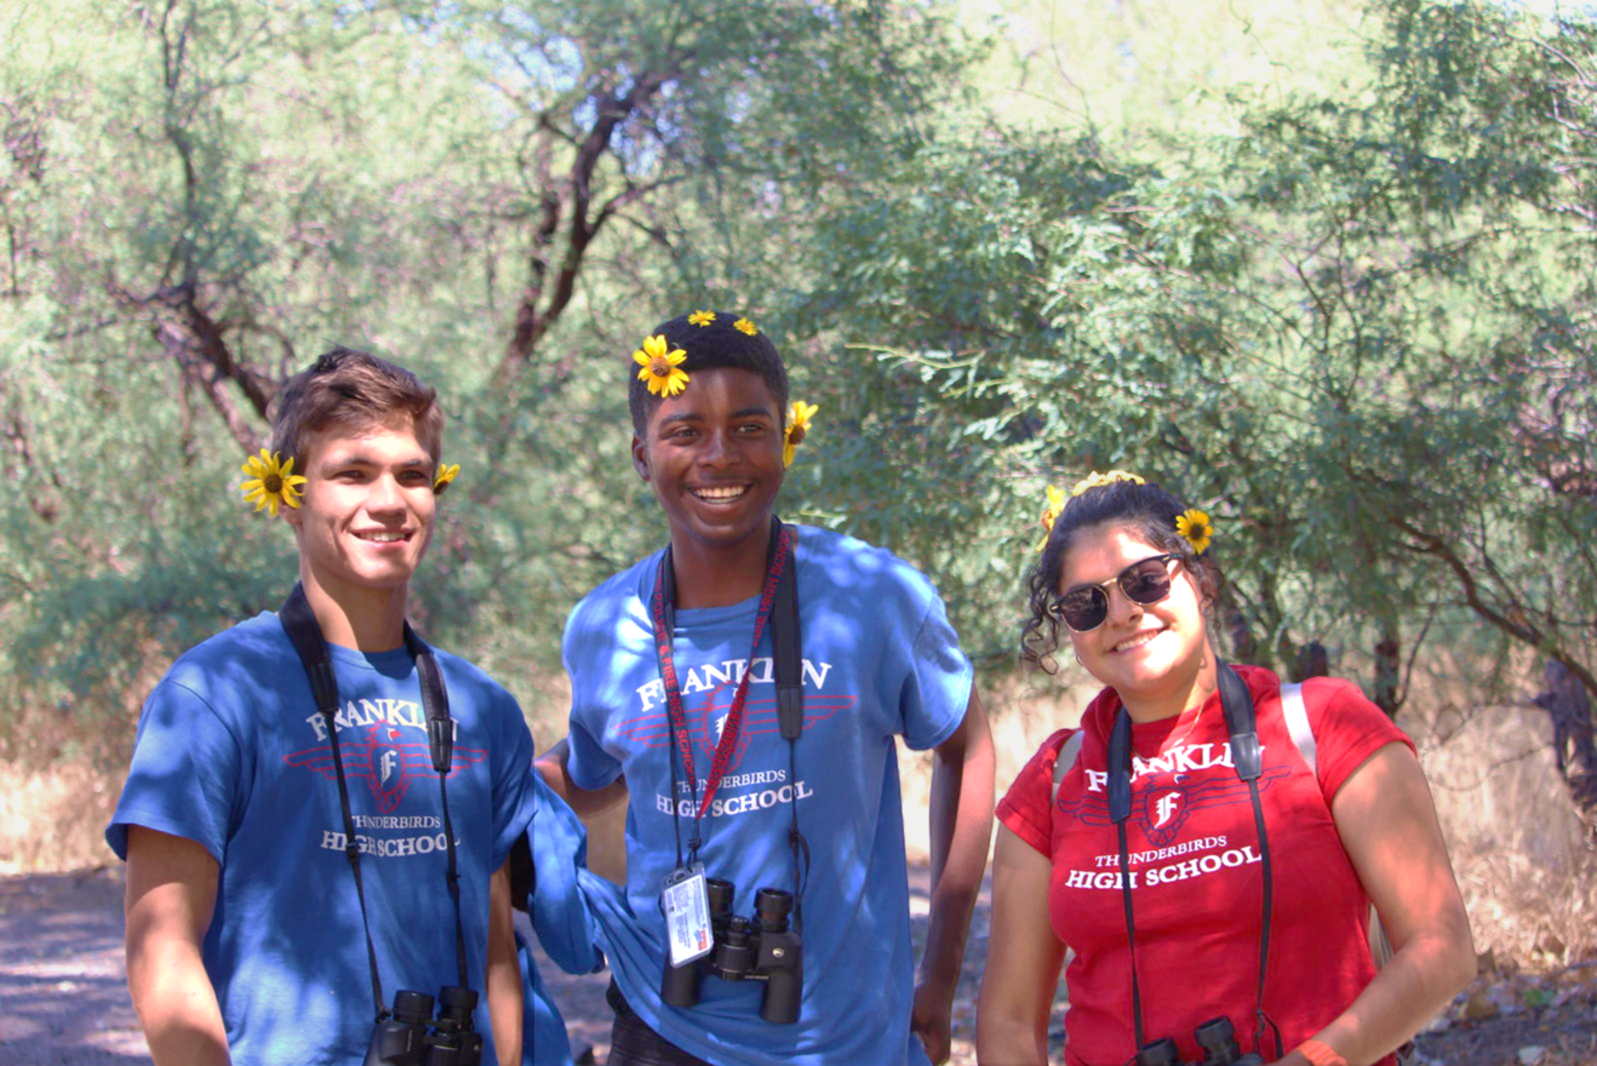 High school students pose with flowers on a River Pathways field trip to Agua Fria National Monument.